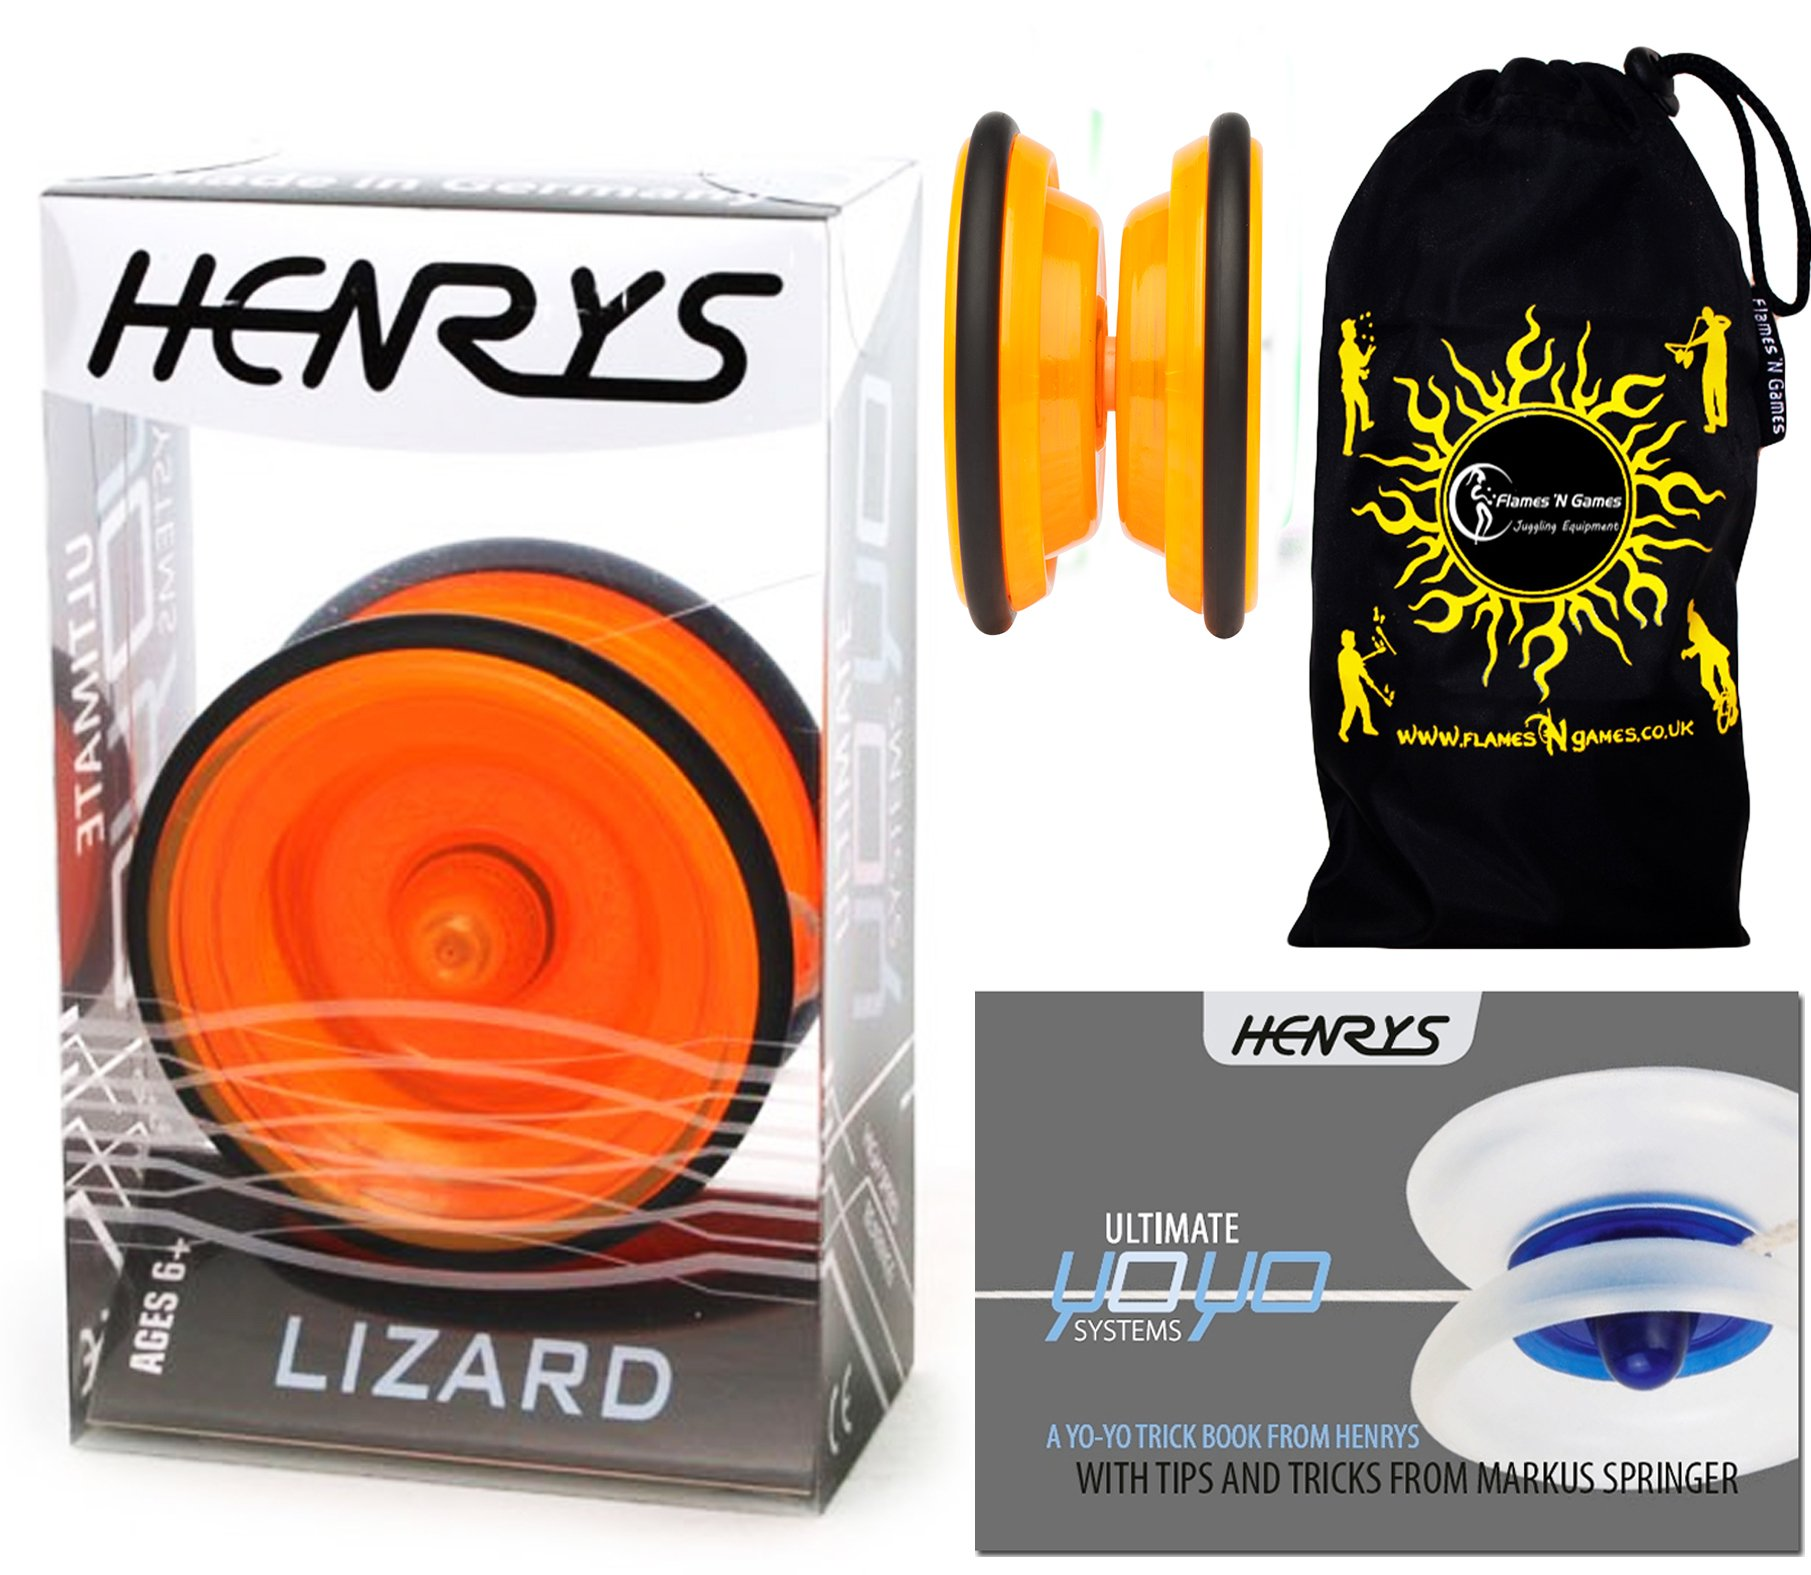 Henrys LIZARD YoYo (Orange) Professional Entry-Level YoYo +Instructional Booklet of Tricks & Travel Bag! Pro YoYos For Kids and Adults!